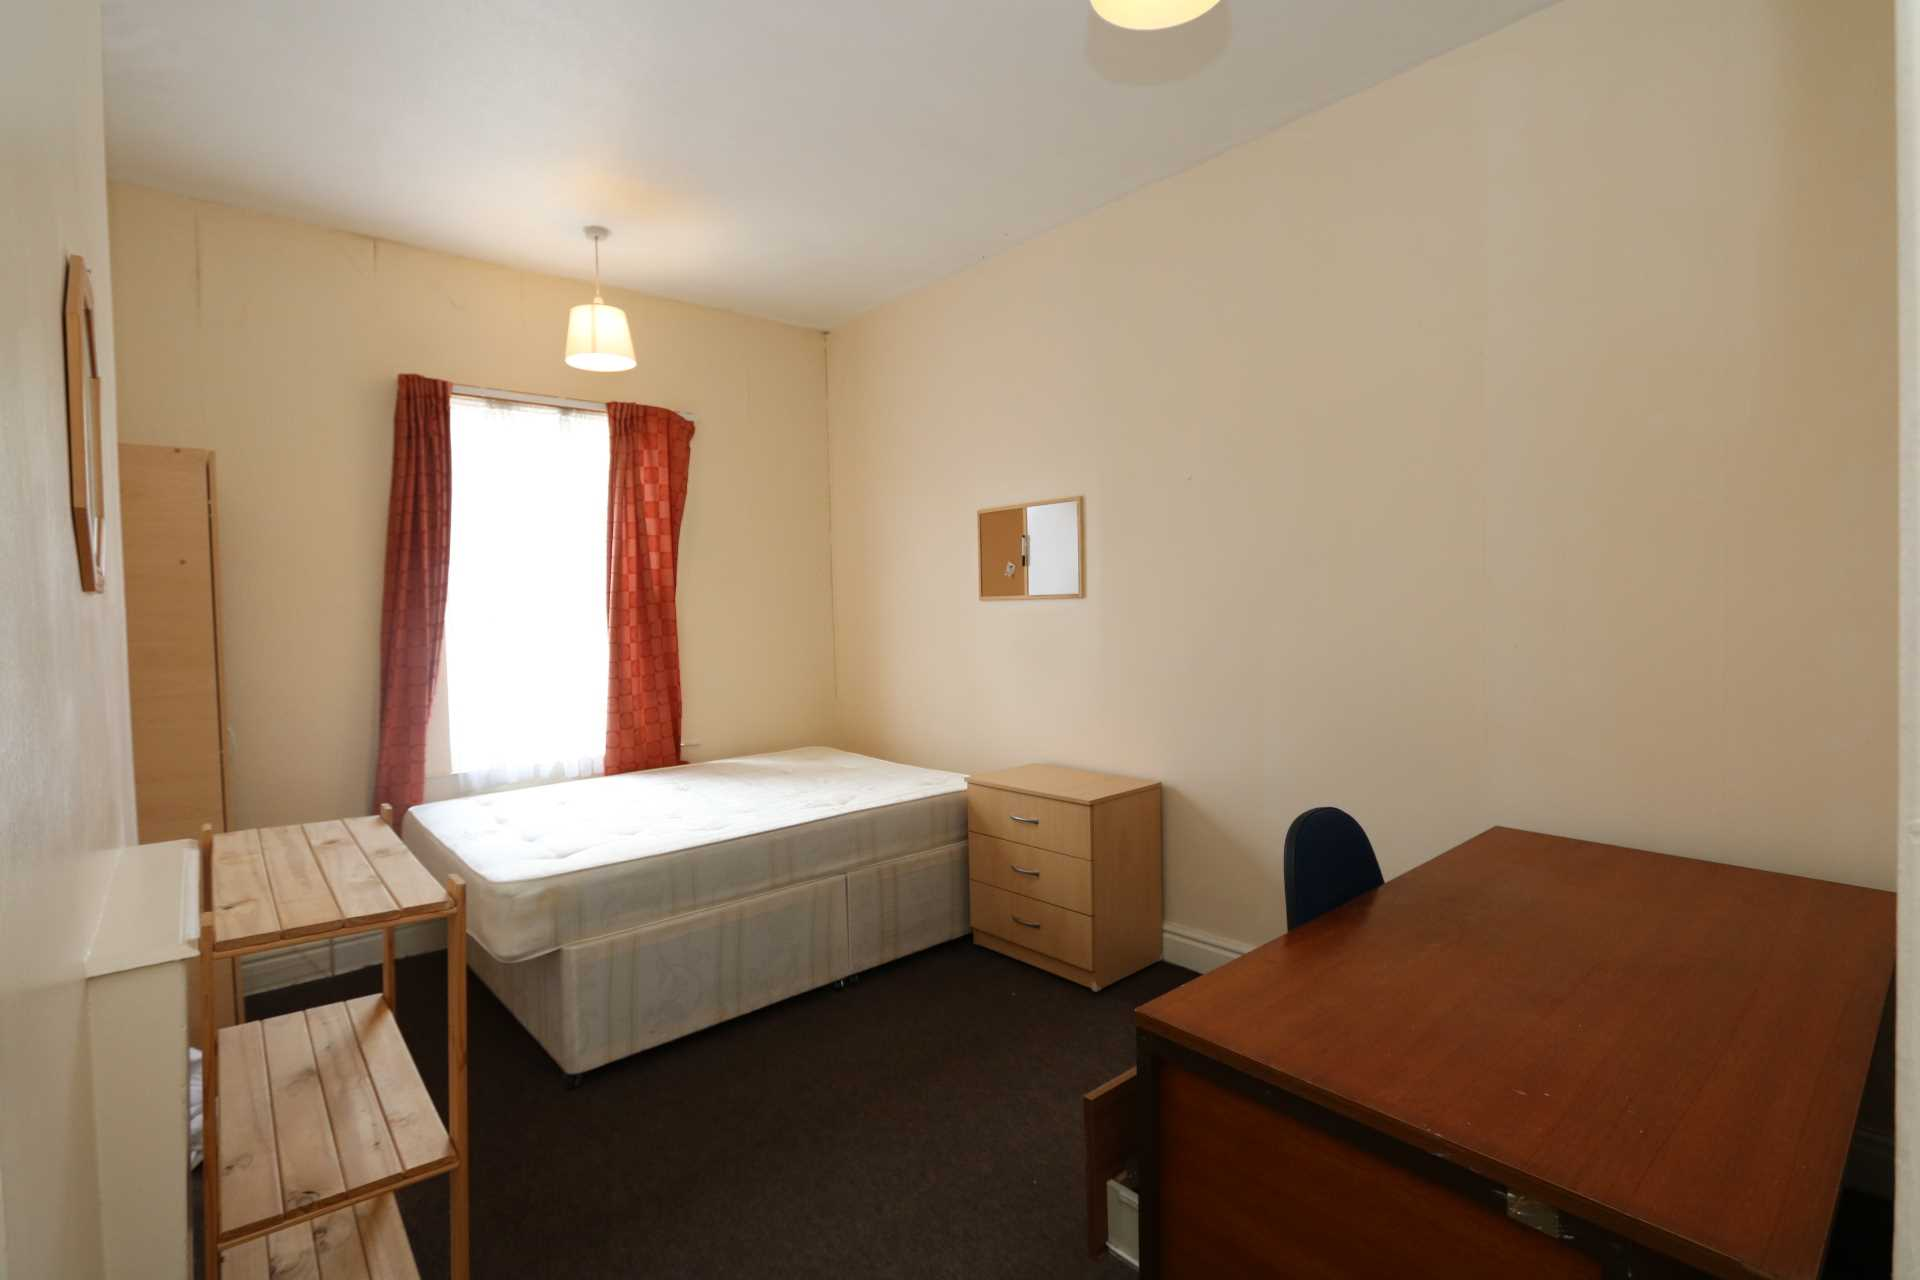 Room 5, Earlsdon Street - 5 bedroom 1 bathroom Warwick Uni student home fully furnished, WIFI & bills included - NO FEES, Image 1